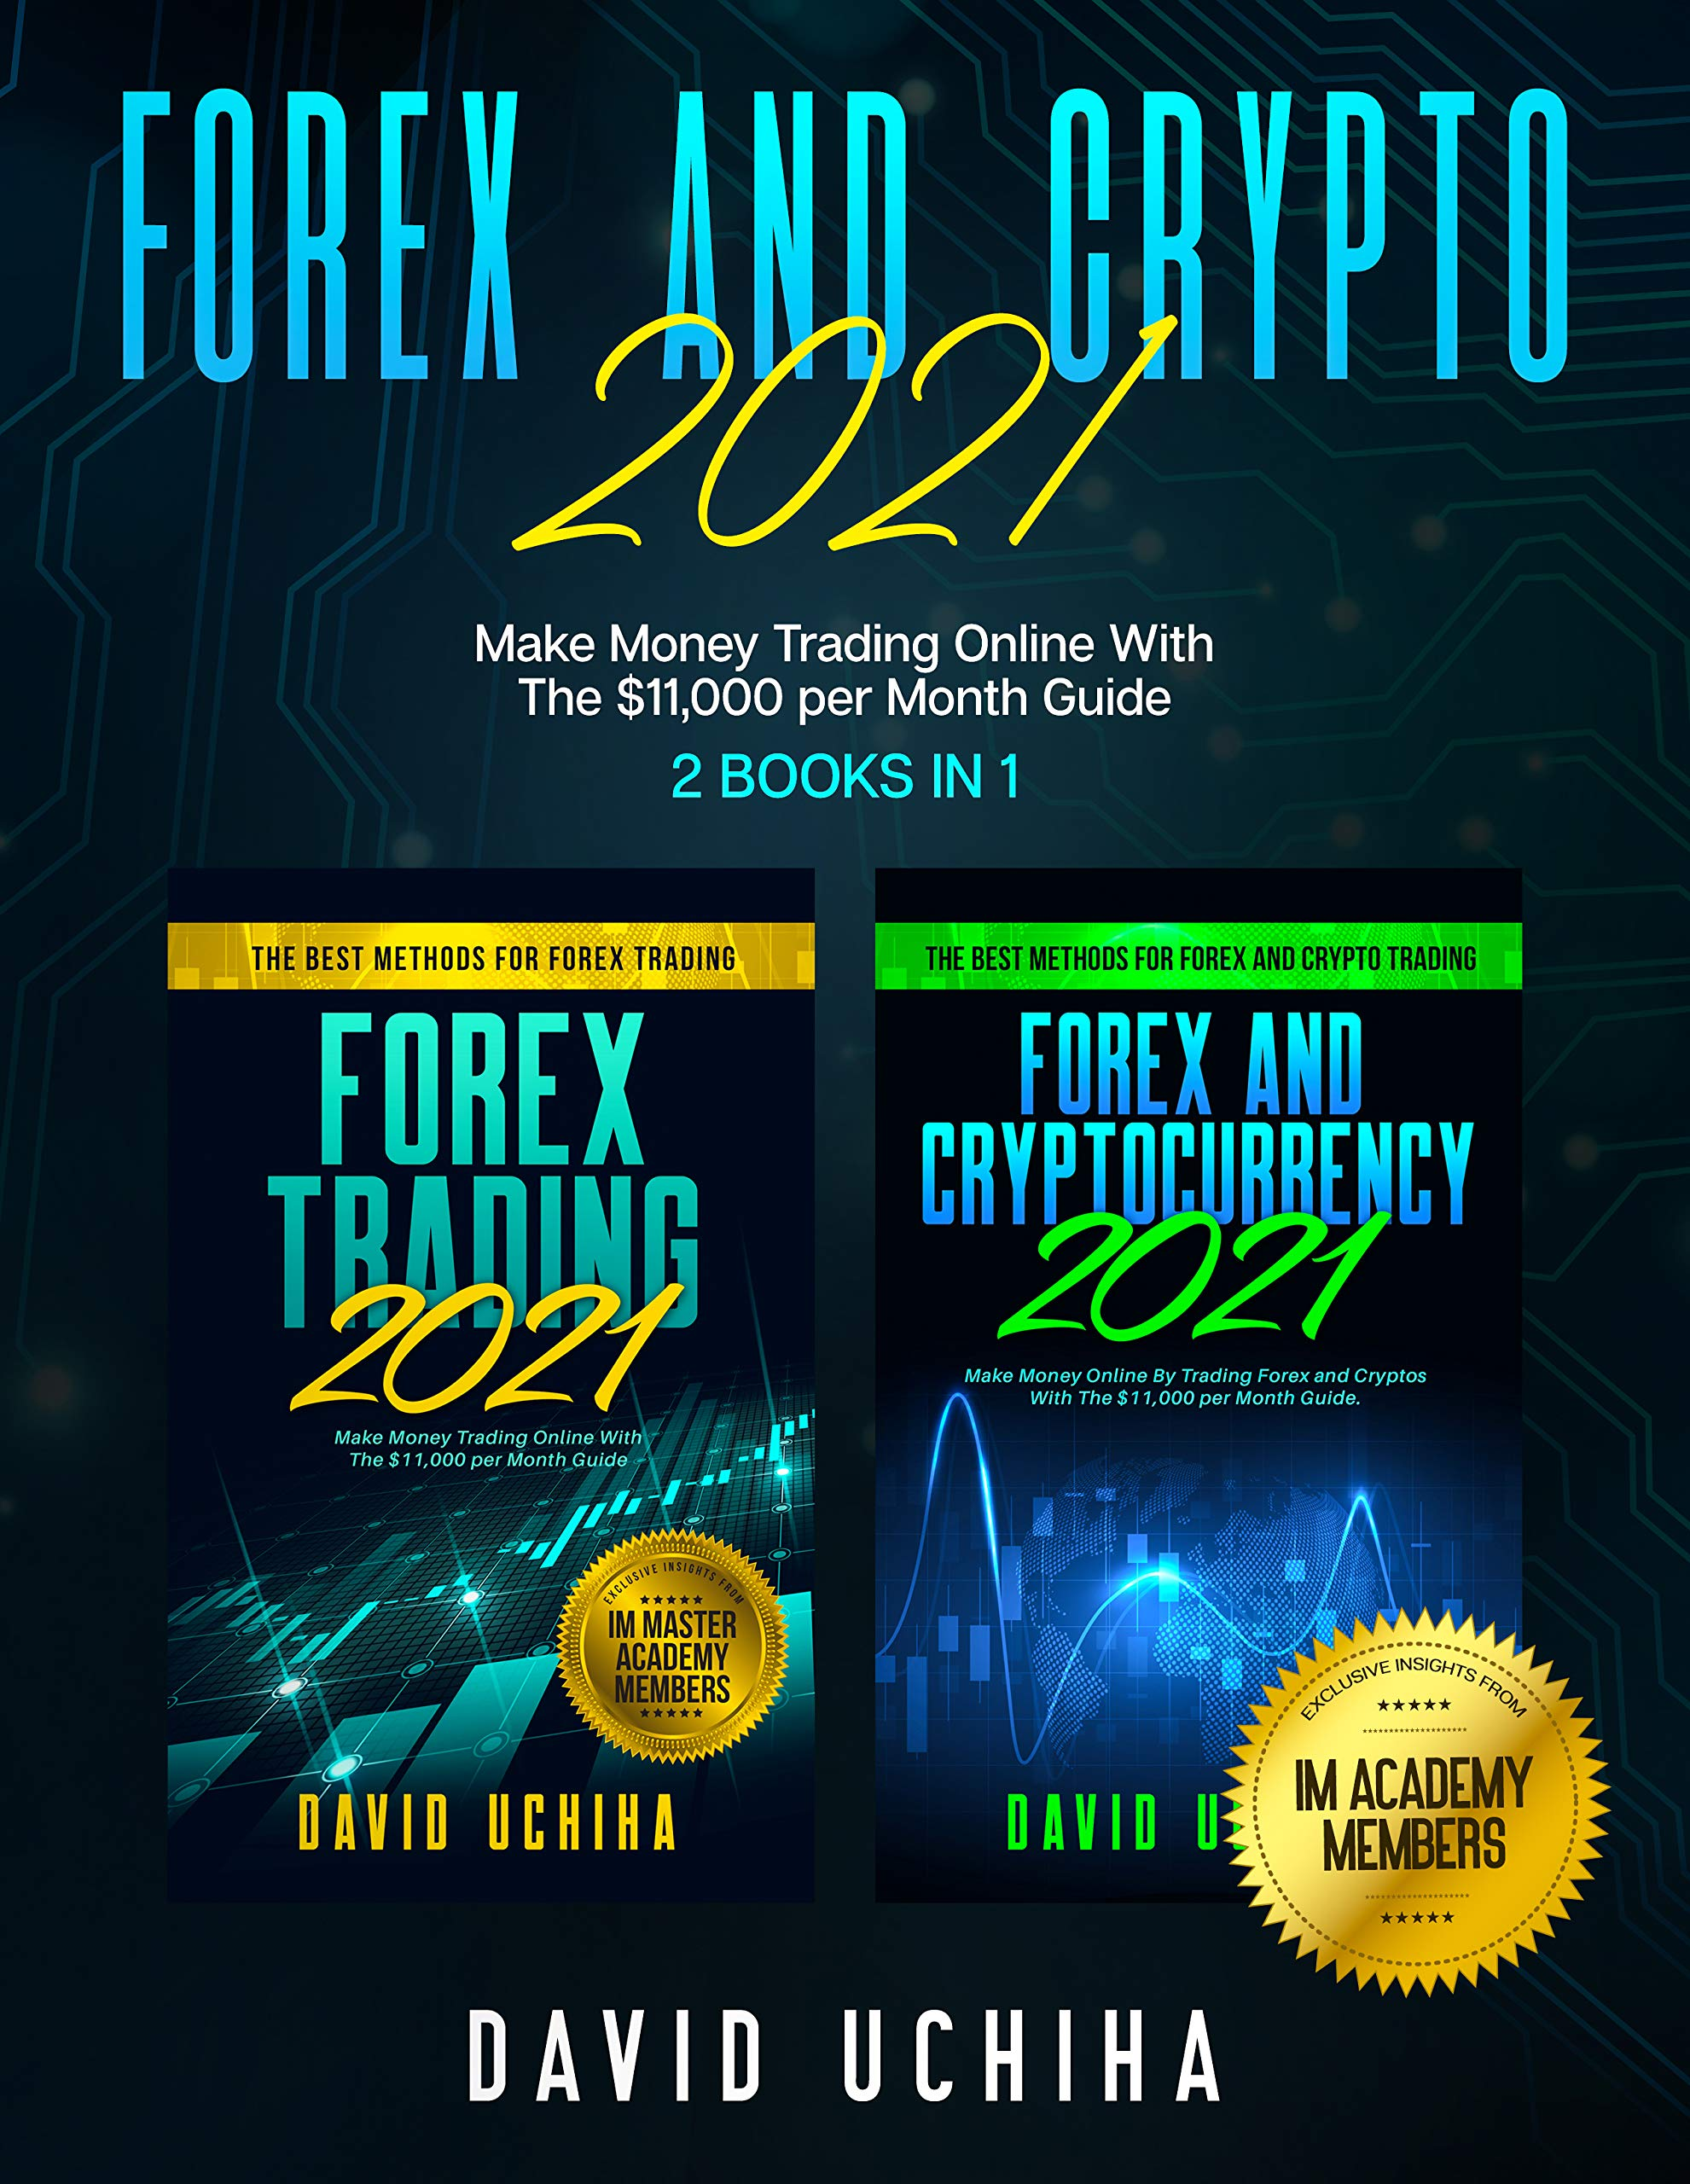 Forex And Crypto 2021: Make Money Trading Online With The $11,000 per Month Guide (2 Books In 1) (Forex Trading With David Uchiha Book 3)